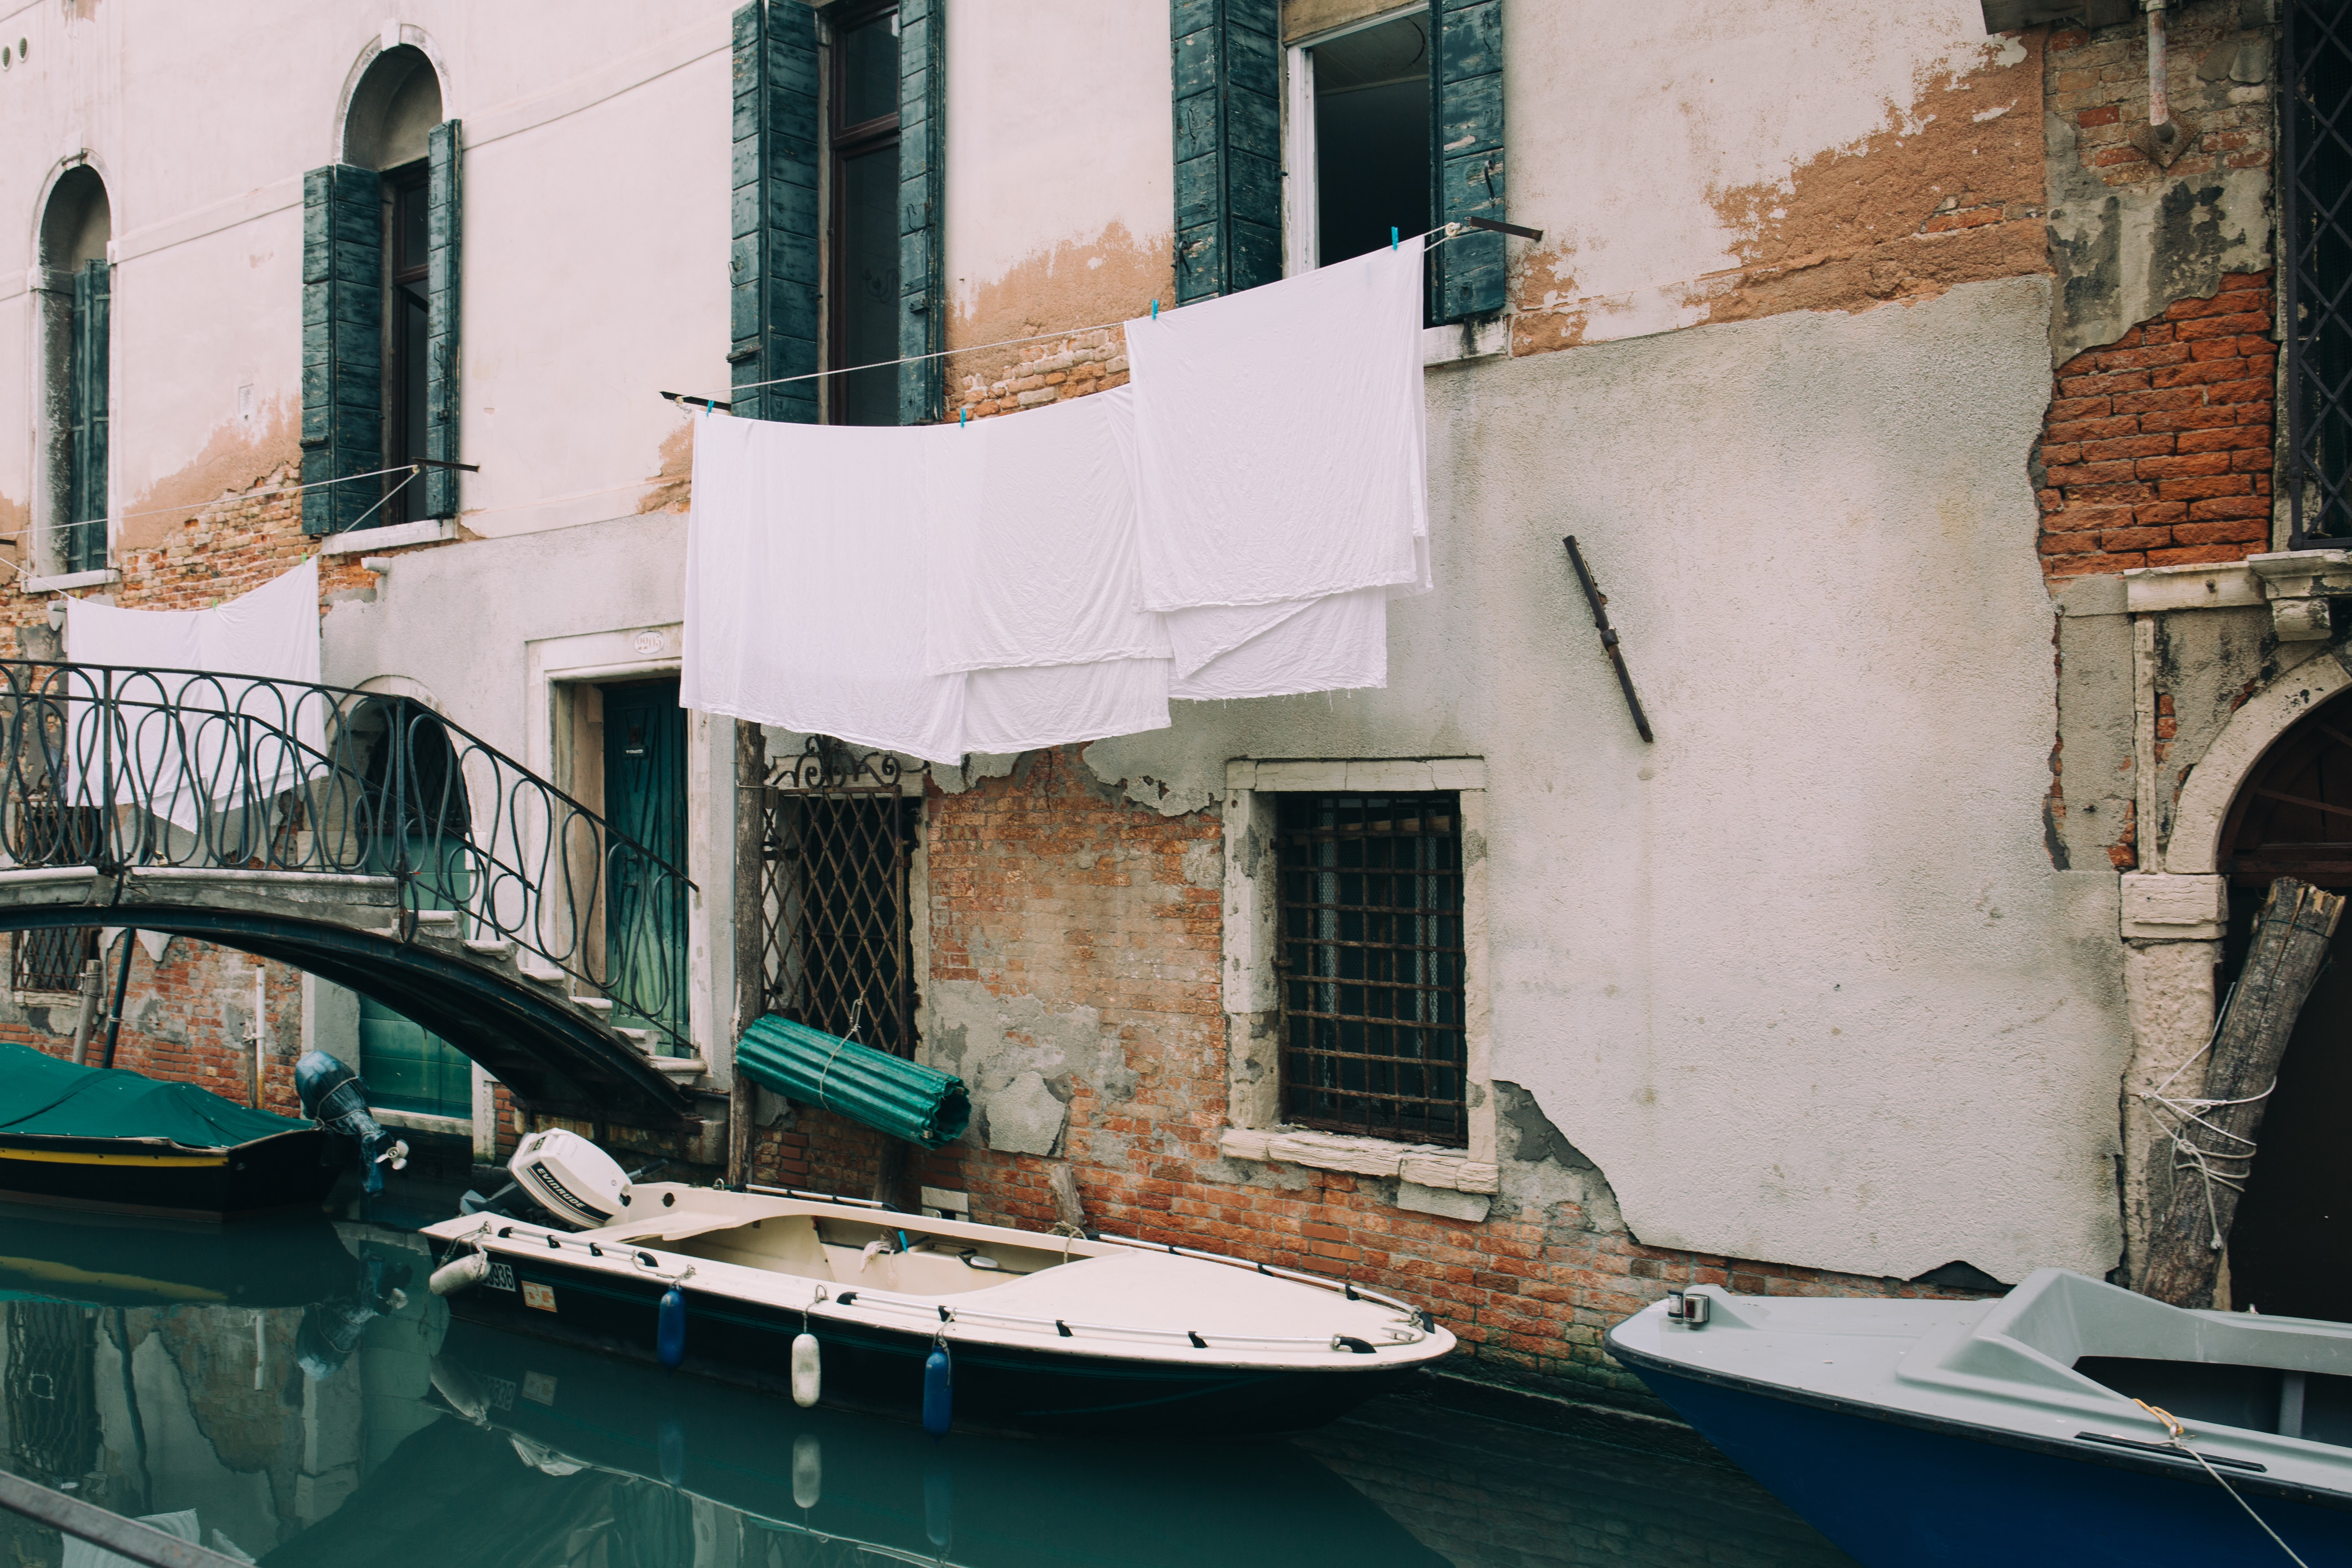 white and blue motorboat near wall during daytime